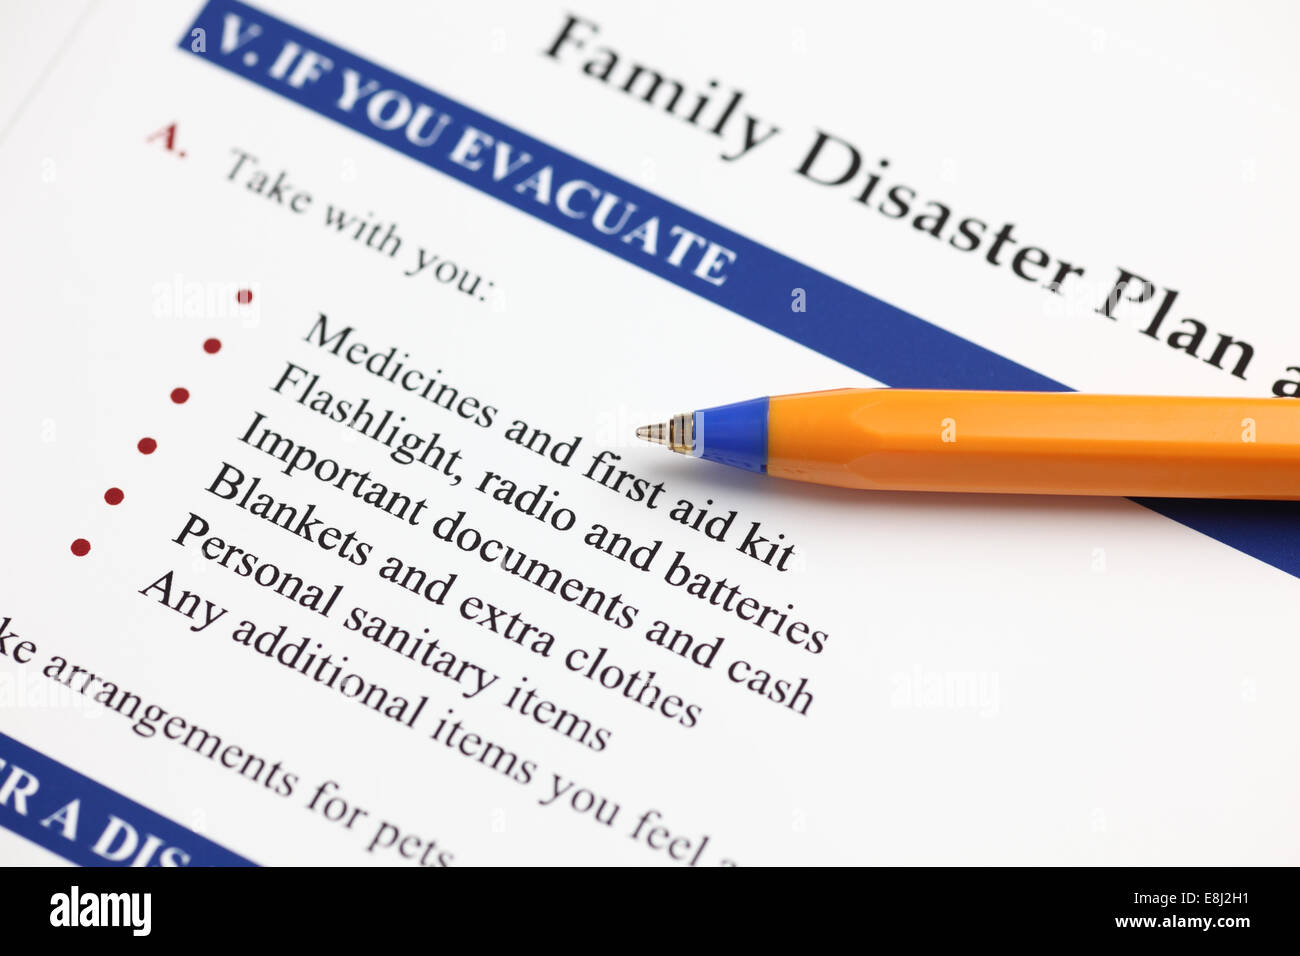 Family Disaster Plan and ballpoint pen. Close-up. - Stock Image